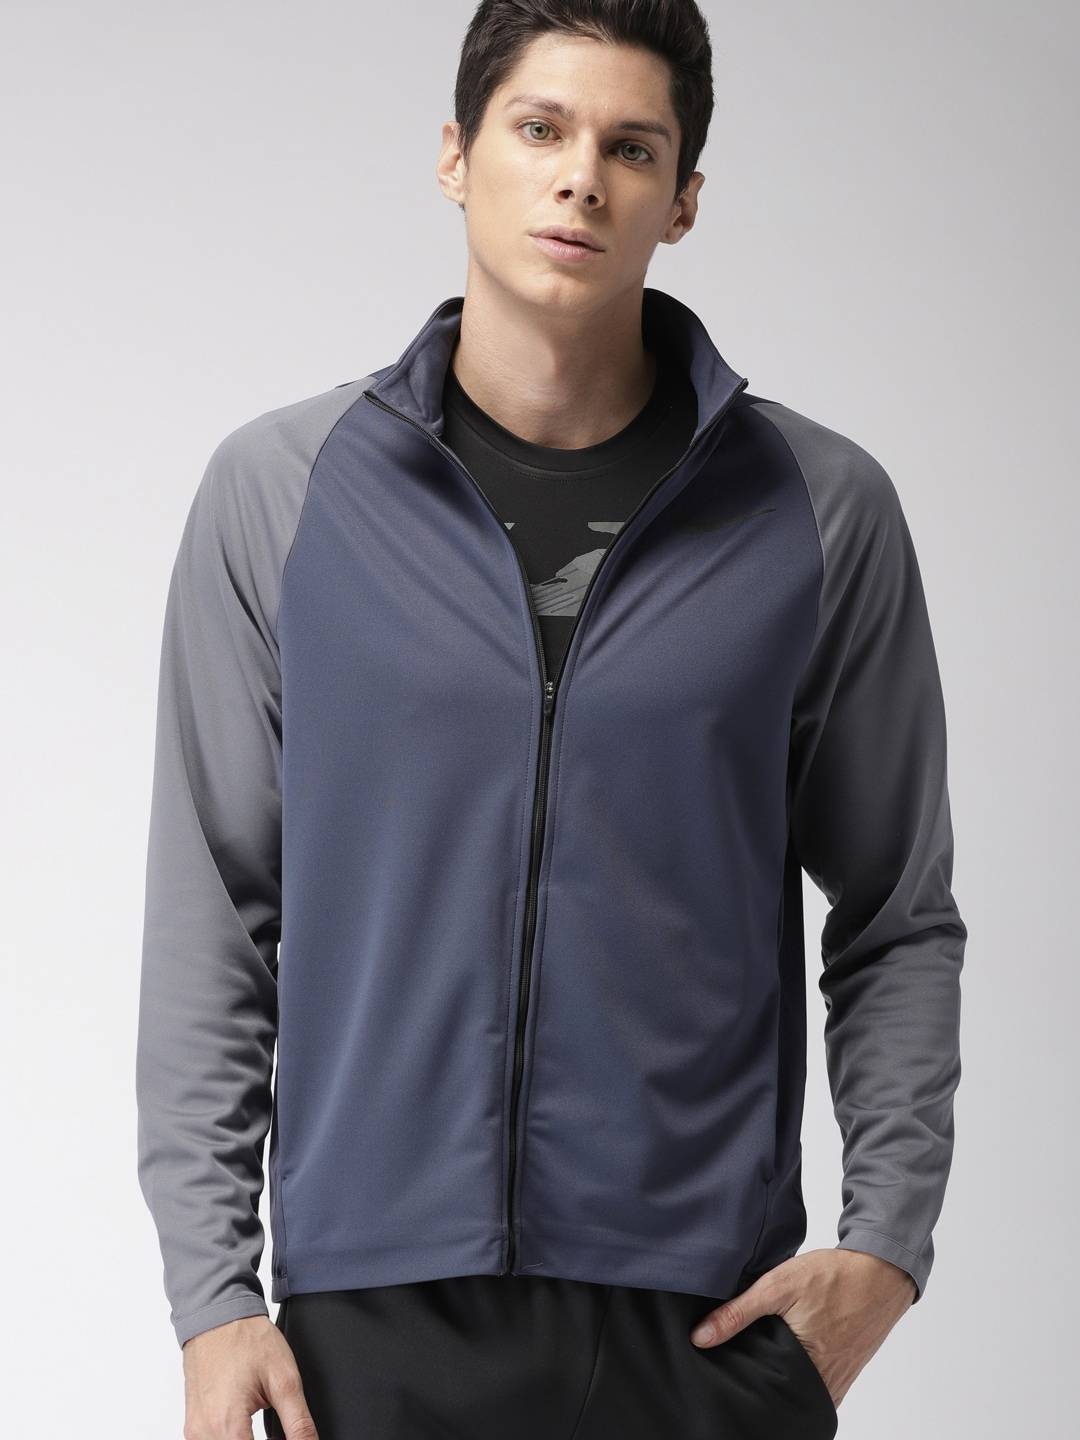 7d8ee34d6bdc Jackets - Buy Leather Jackets